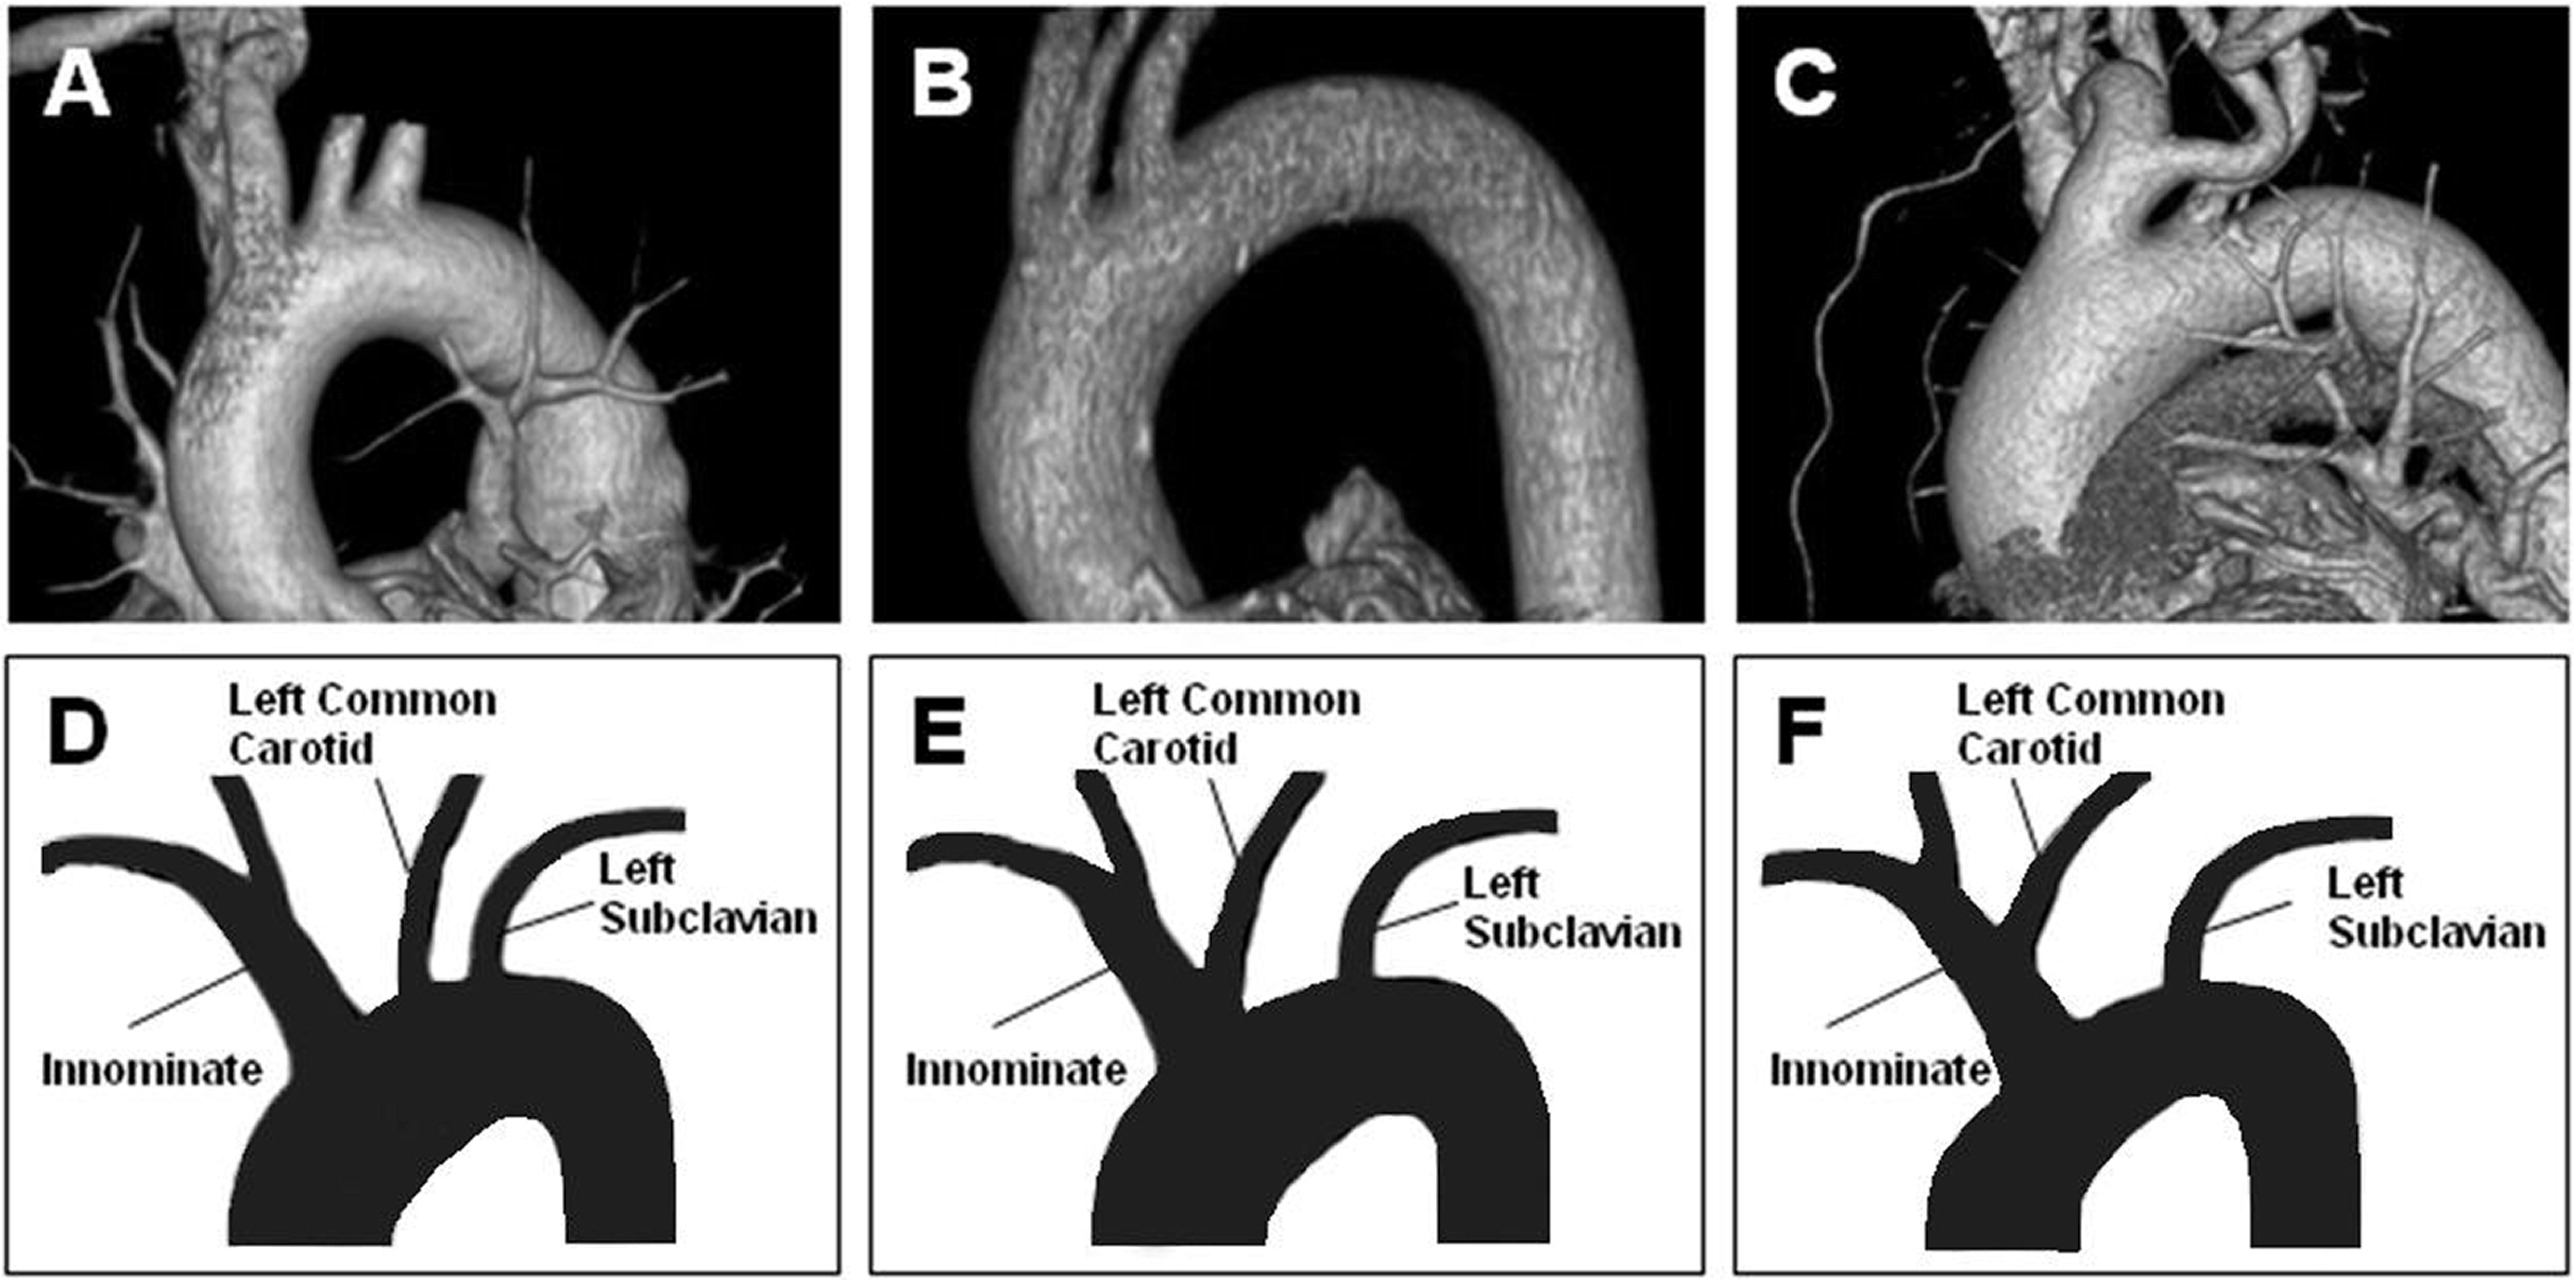 Prevalence of Bovine Aortic Arch Configuration in Adult Patients with and without Thoracic Aortic Pathology - Annals of Vascular Surgery